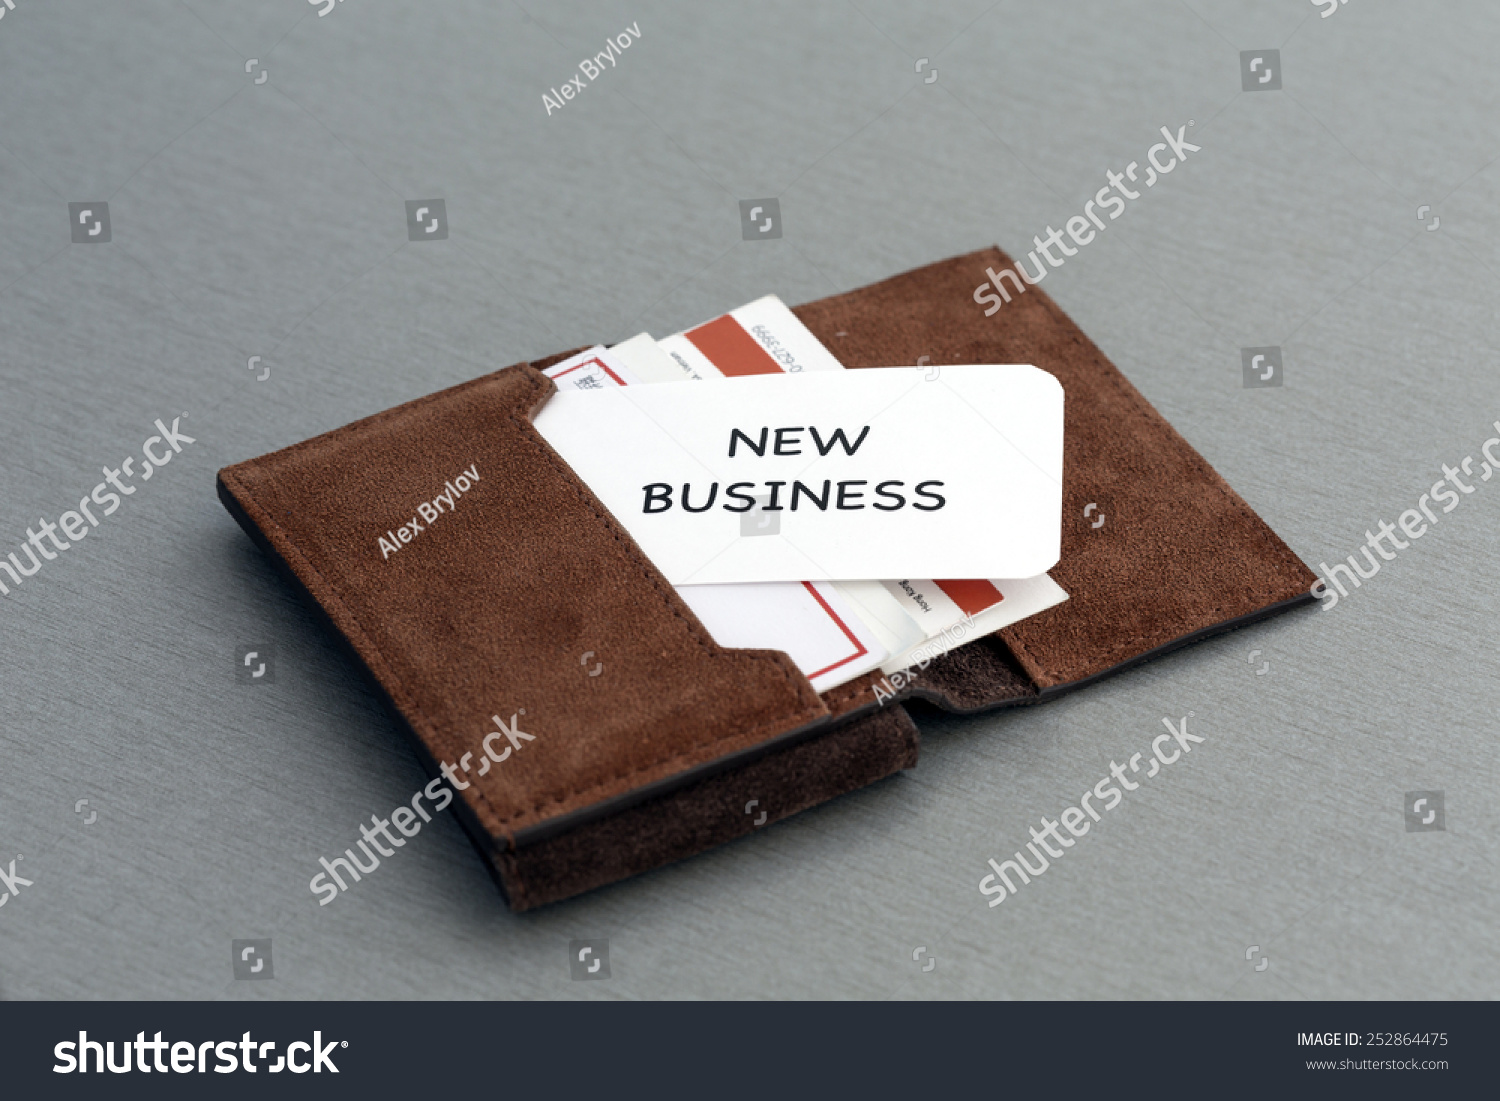 New Business Conceptual Composition Leather Businesscard Stock Photo ...